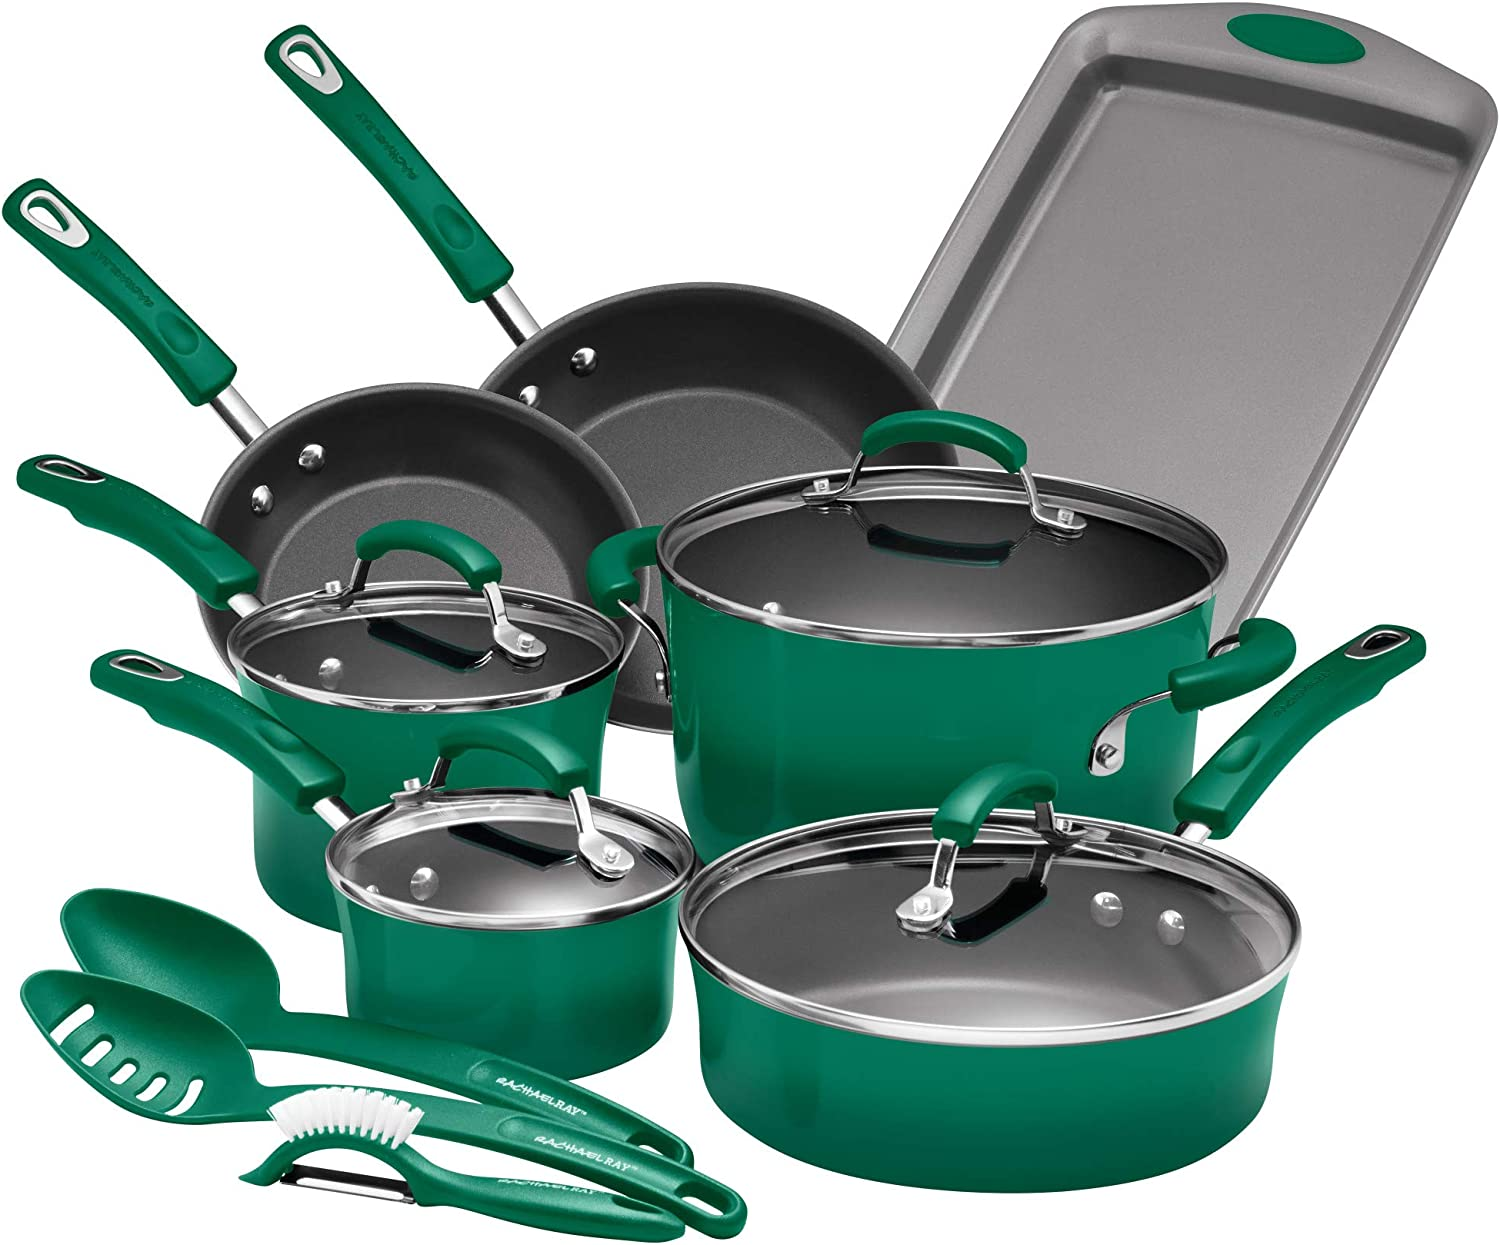 Rachael Ray Porcelain Enamel Aluminum Nonstick 14 piece Cookware Set (Fennel Green)